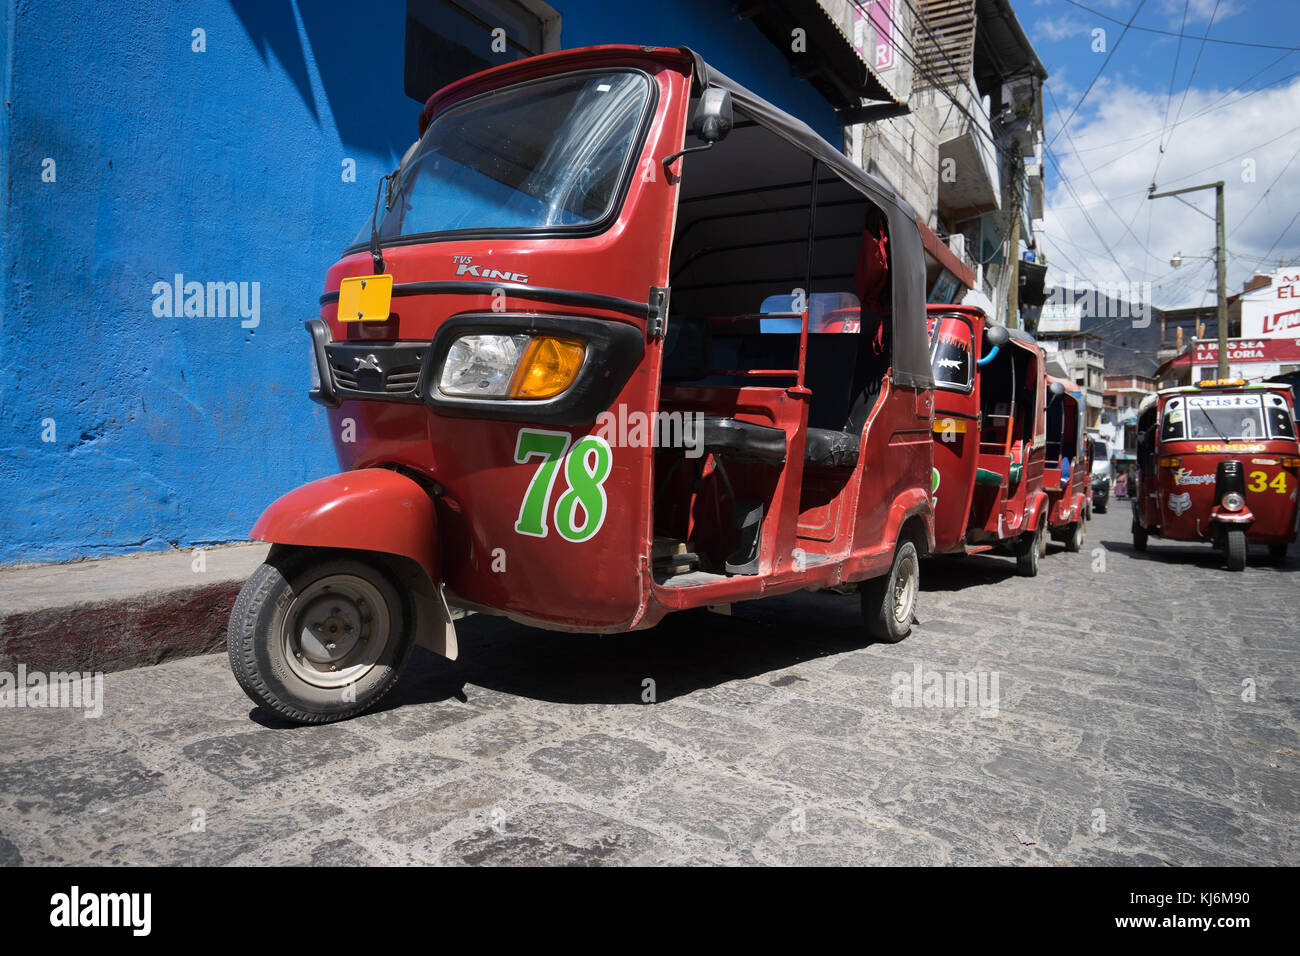 tuktuk stock photos & tuktuk stock images - alamy